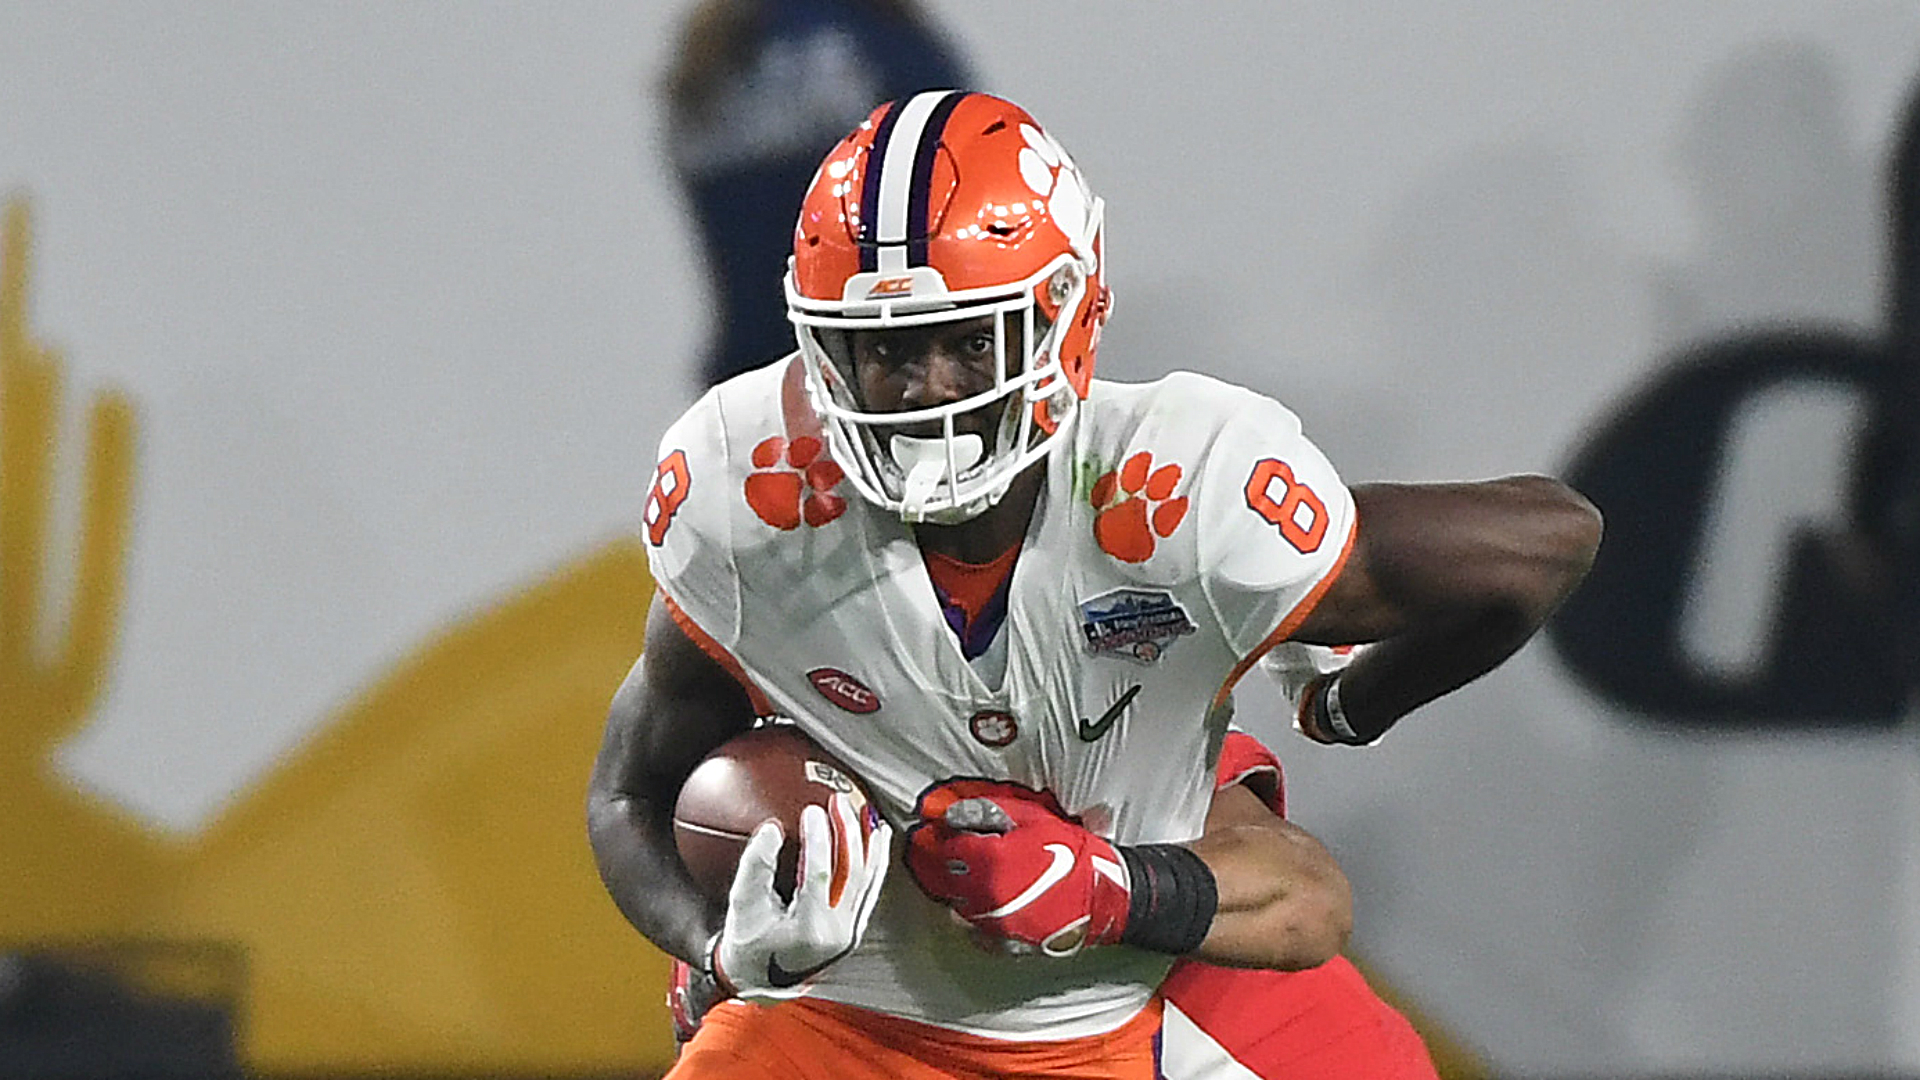 Photo of Clemson's top receiver Justyn Ross will undergo surgery and miss the 2020 season